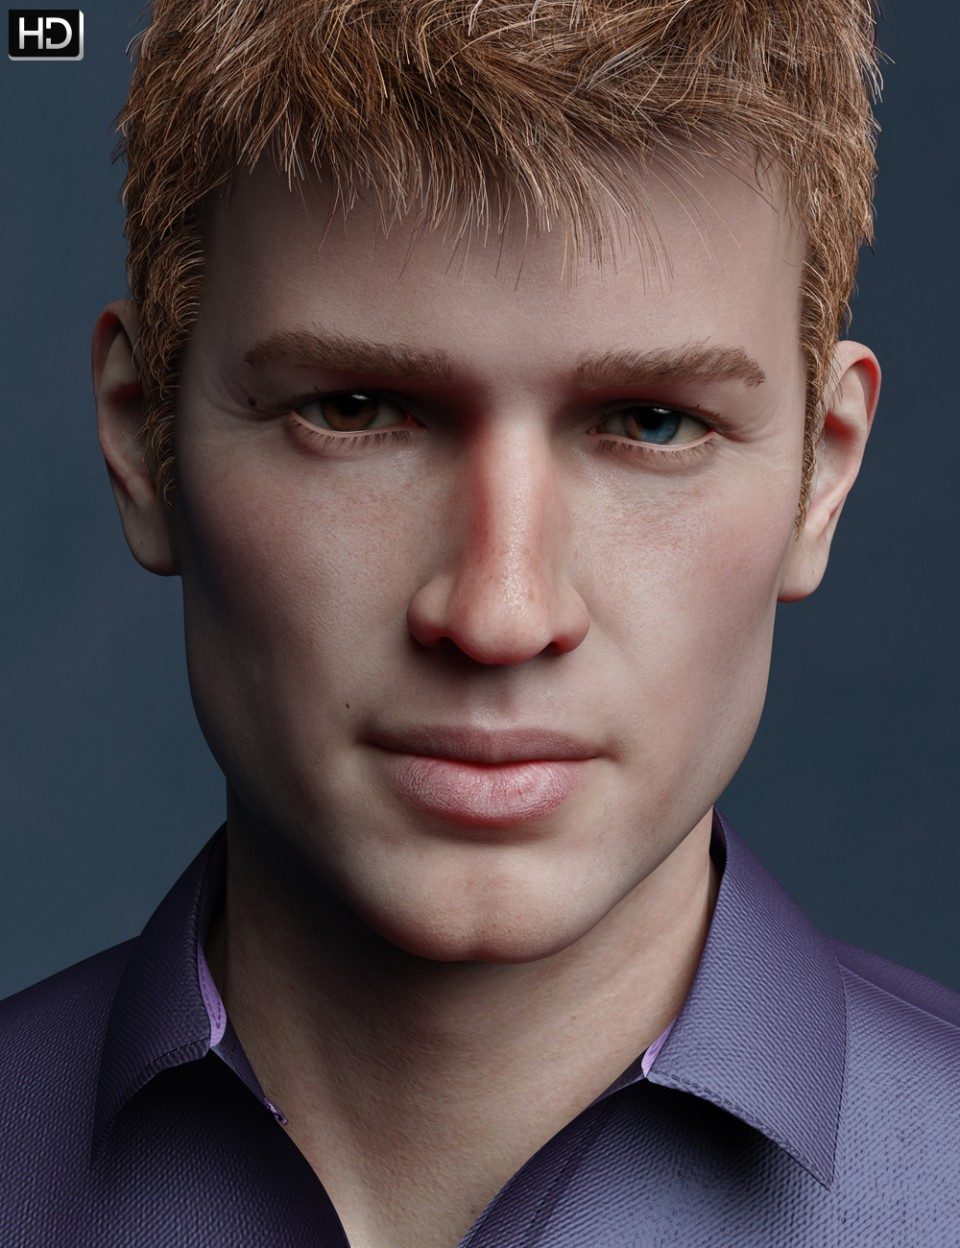 Theo HD for Michael 8_DAZ3D下载站